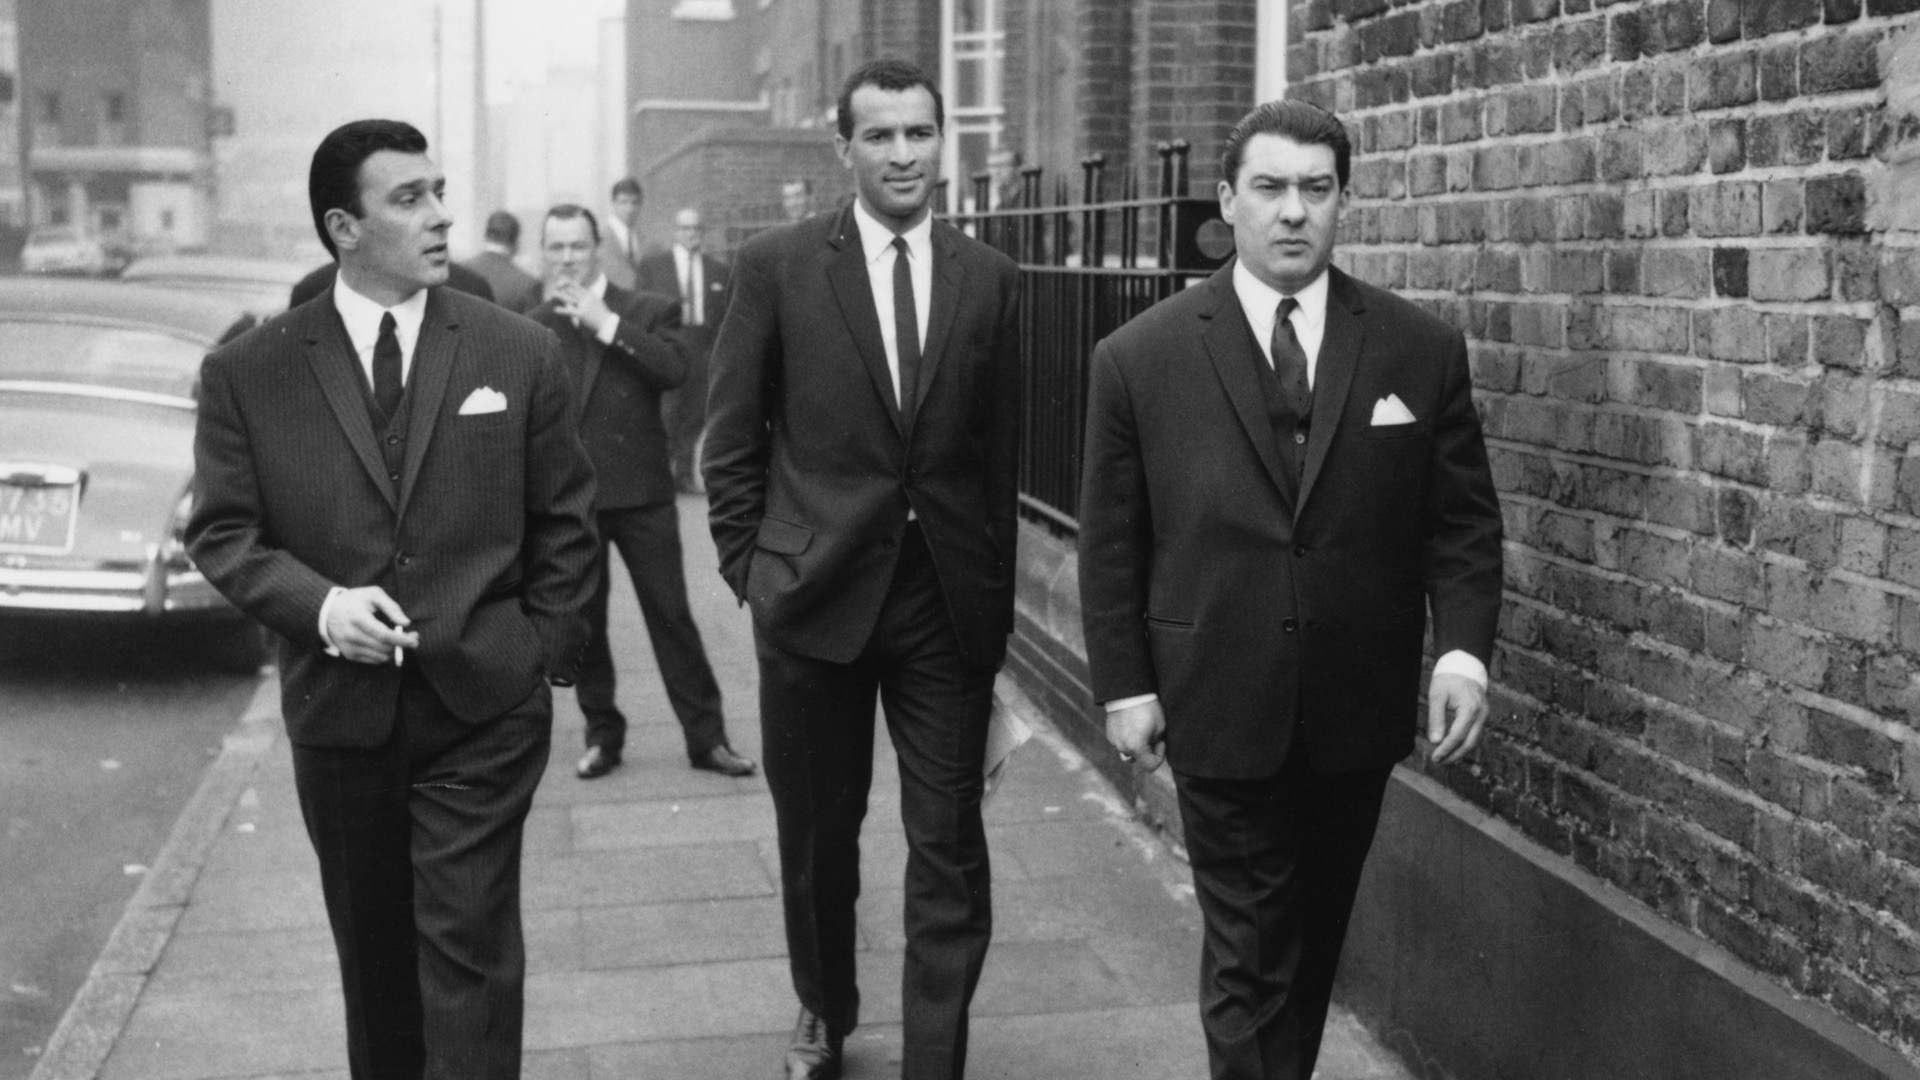 The Kray twins together.